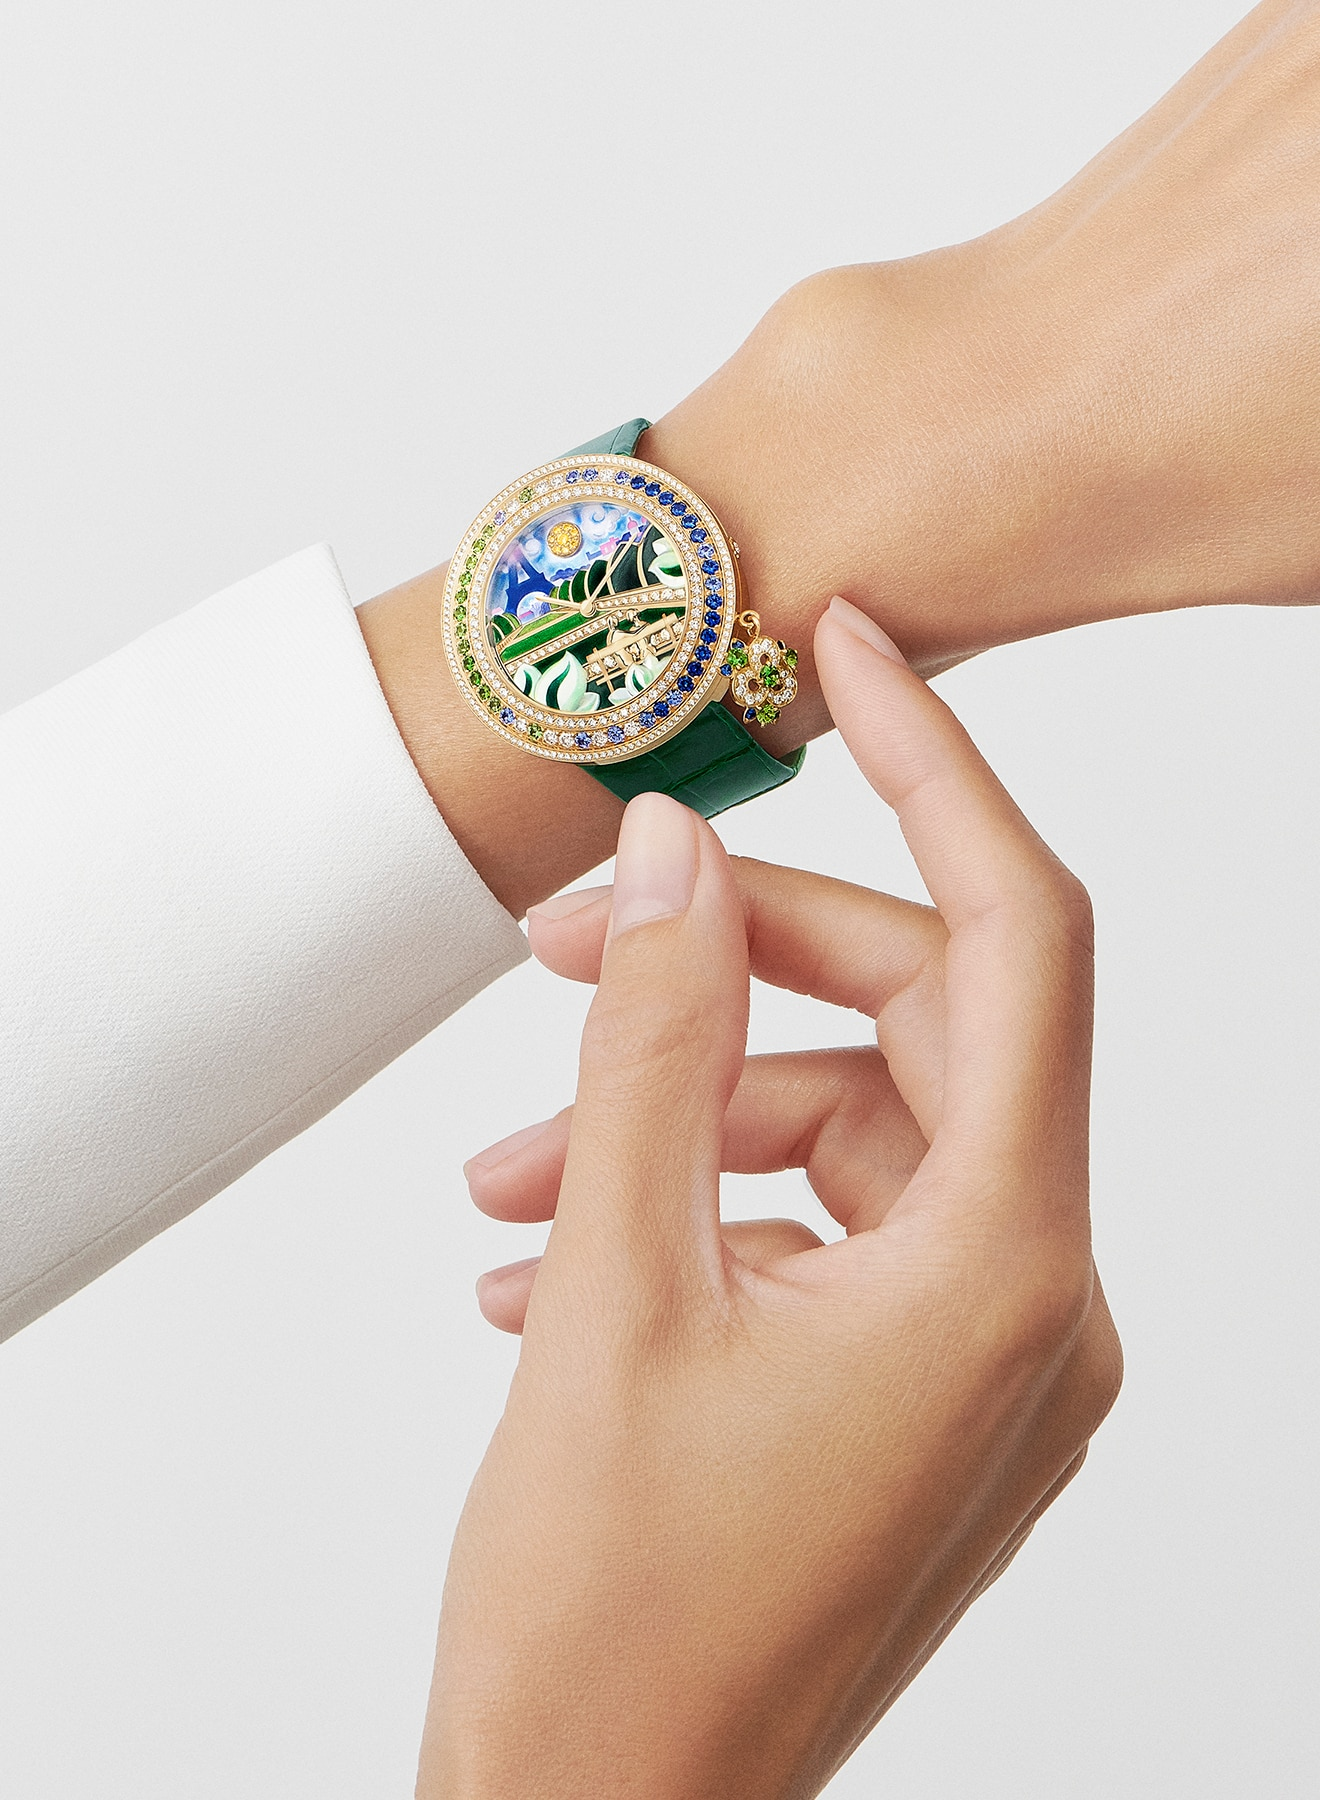 Extraordinary Dials collection, watch, yellow gold, tsavorite, diamonds, mother-of-pearl and sapphire, hand trying to catch charm, Van Cleef & Arpels